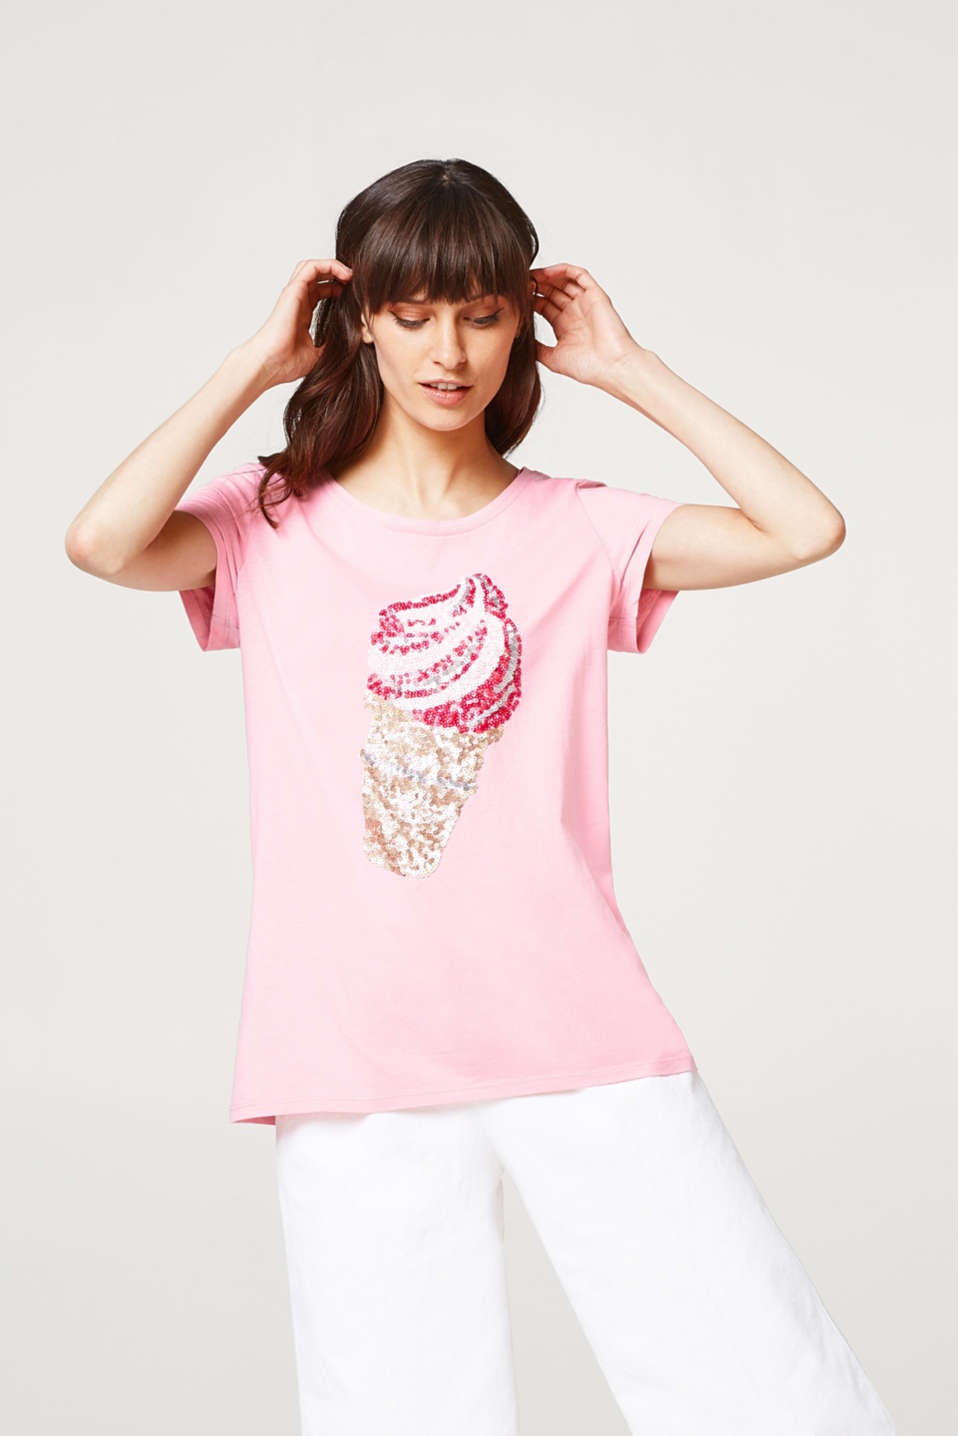 Esprit - T-shirt with decorative sequins, 100% cotton